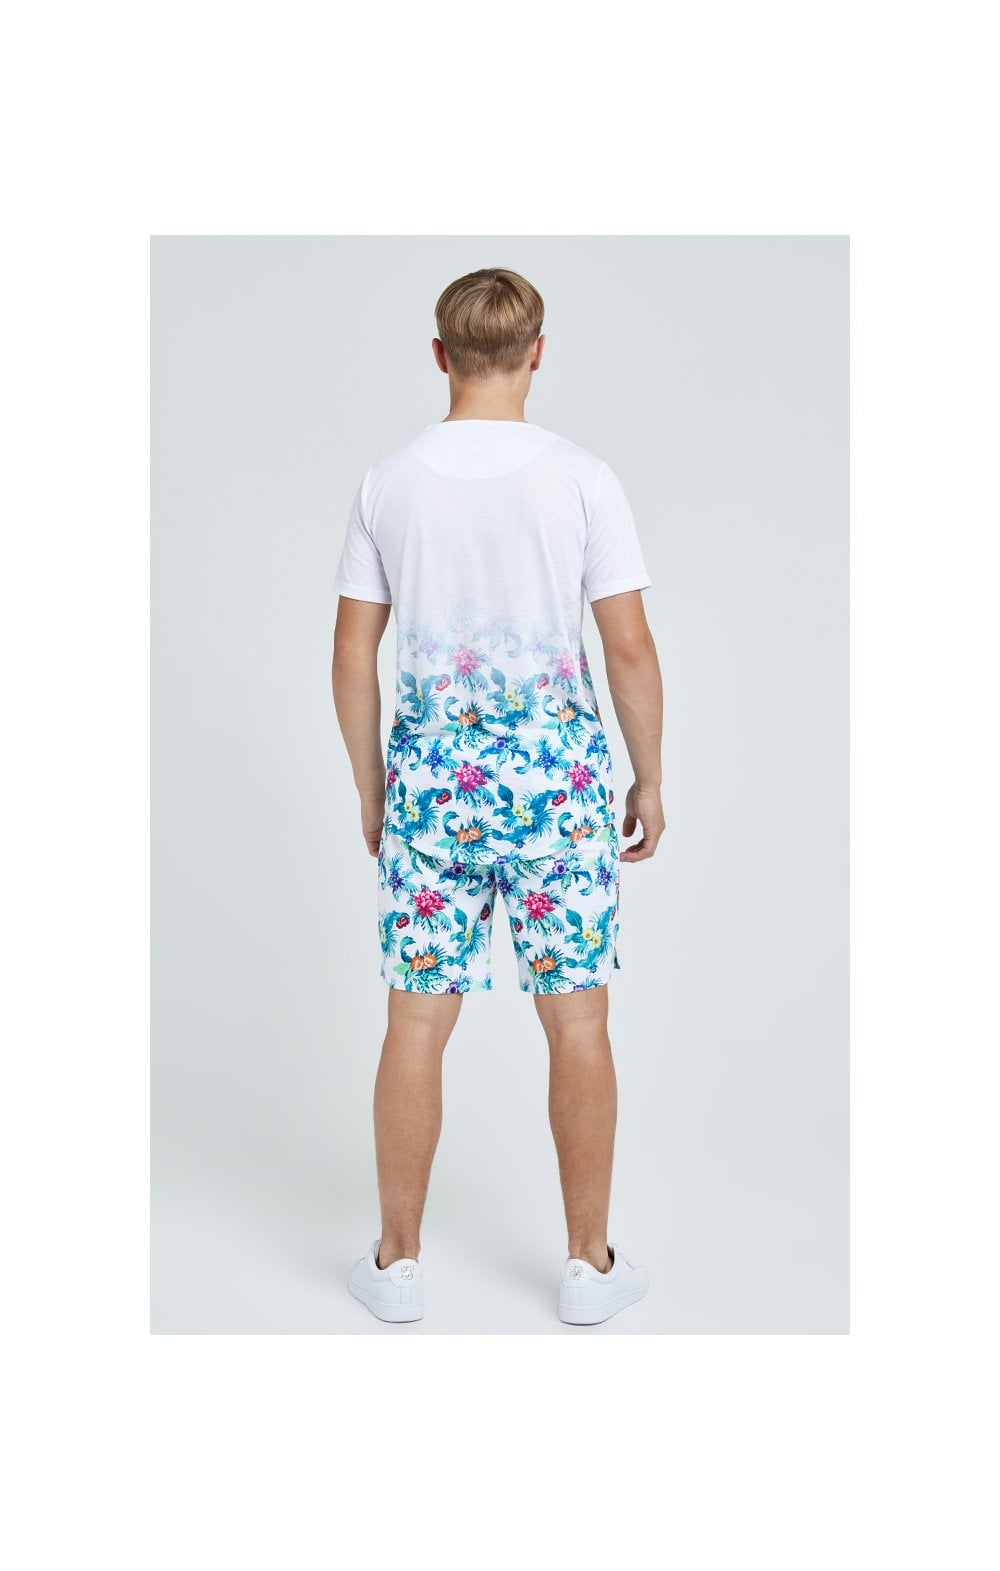 Illusive London Swim Shorts - White & Floral (8)